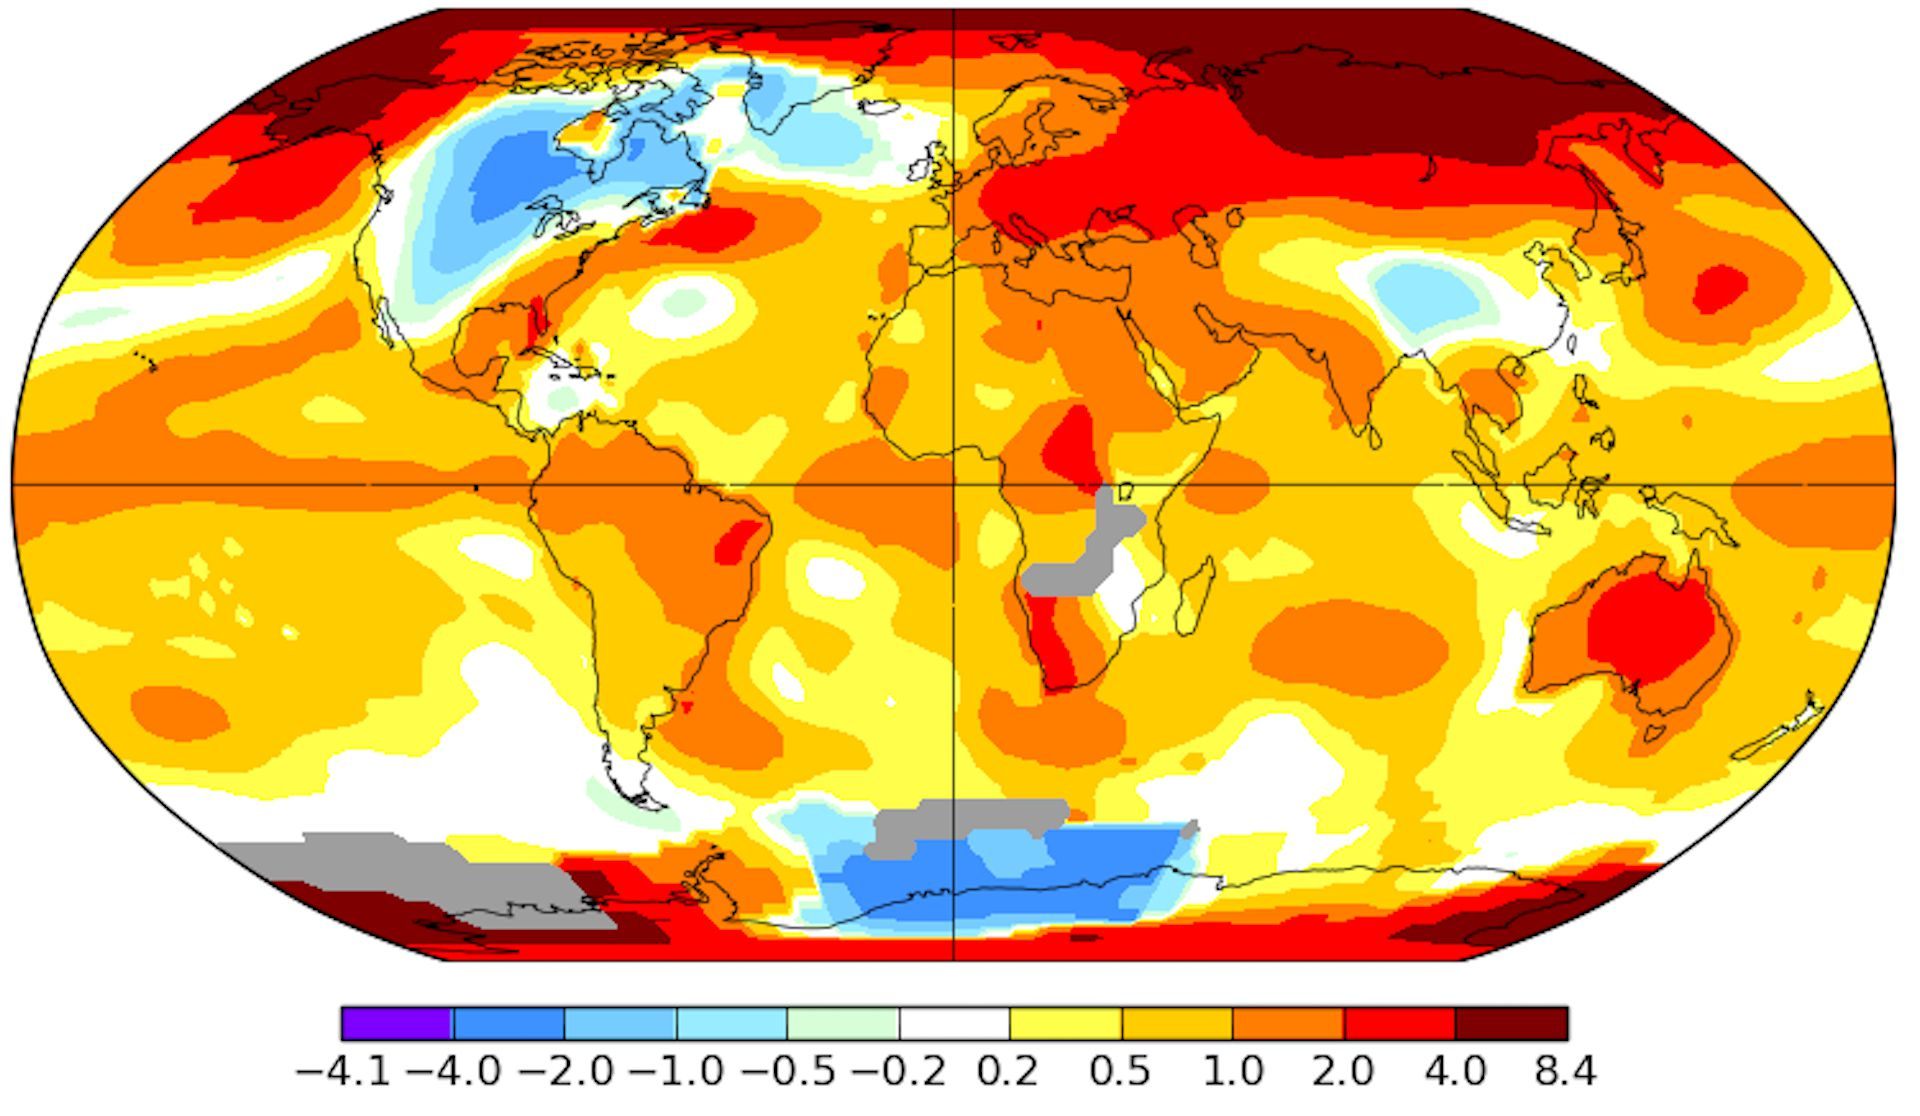 NASA image of earth's temperatures in October